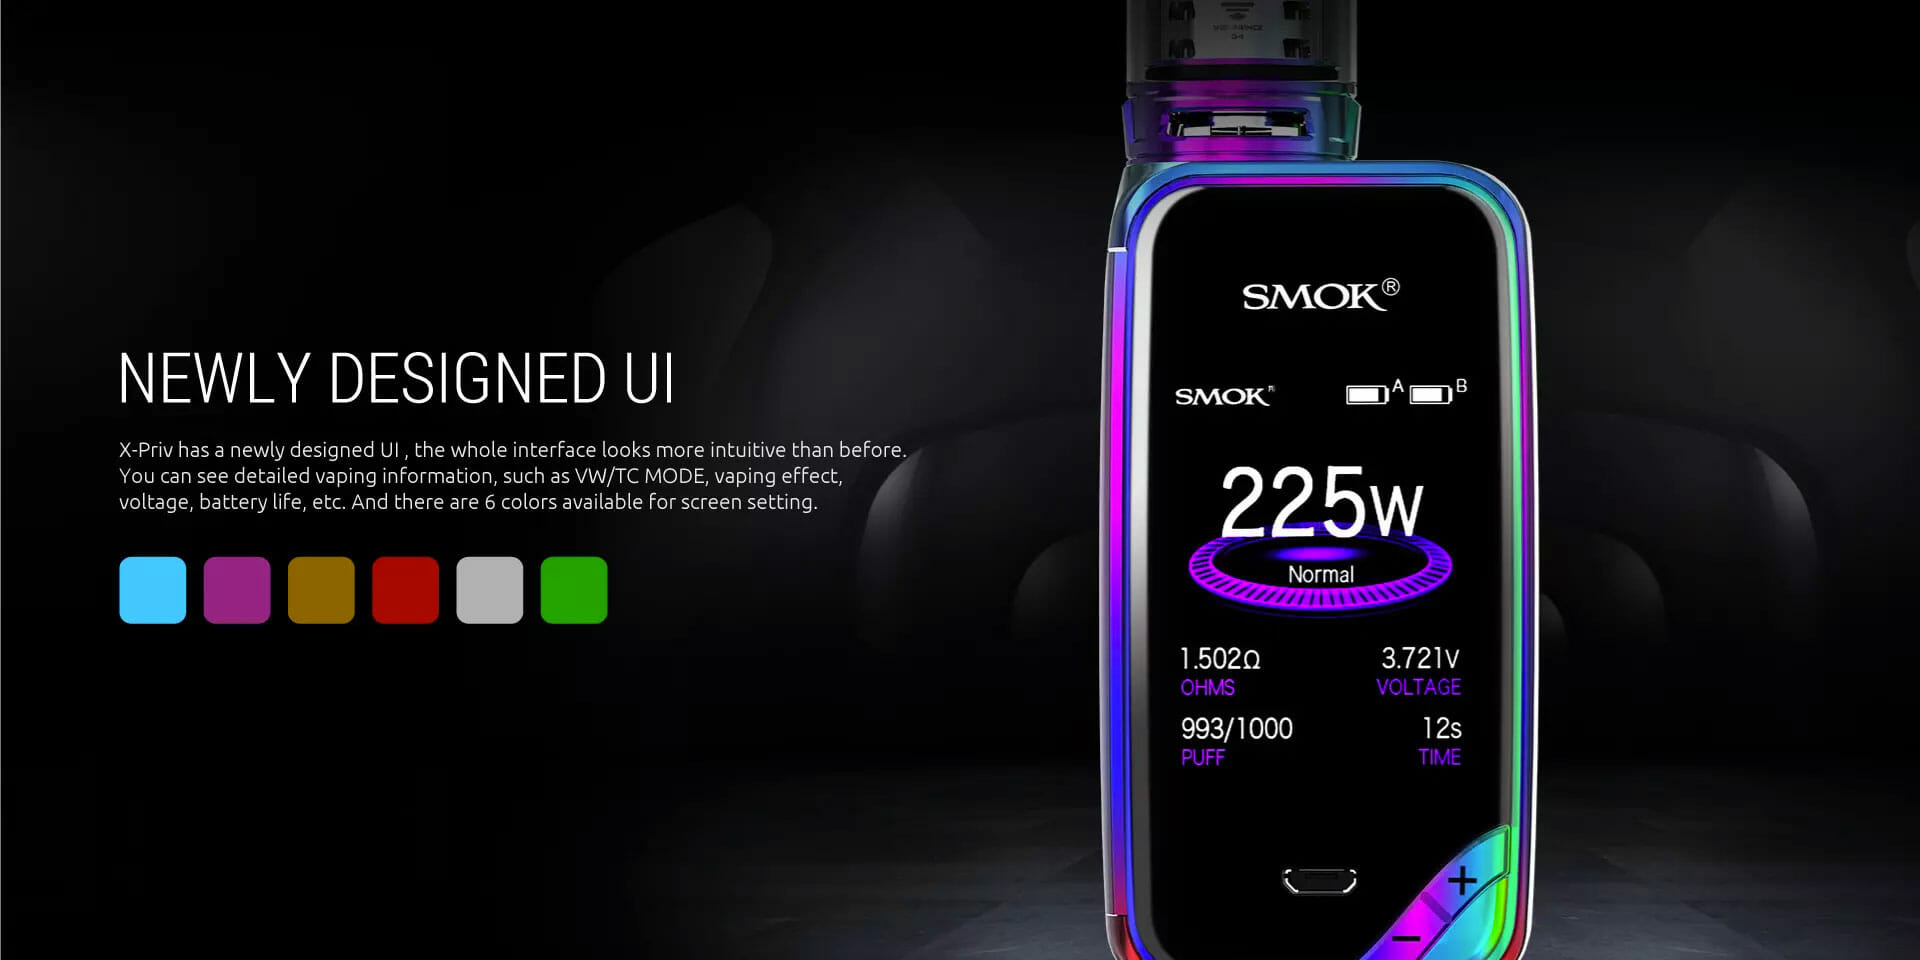 smok-x-priv-kit-product-page10